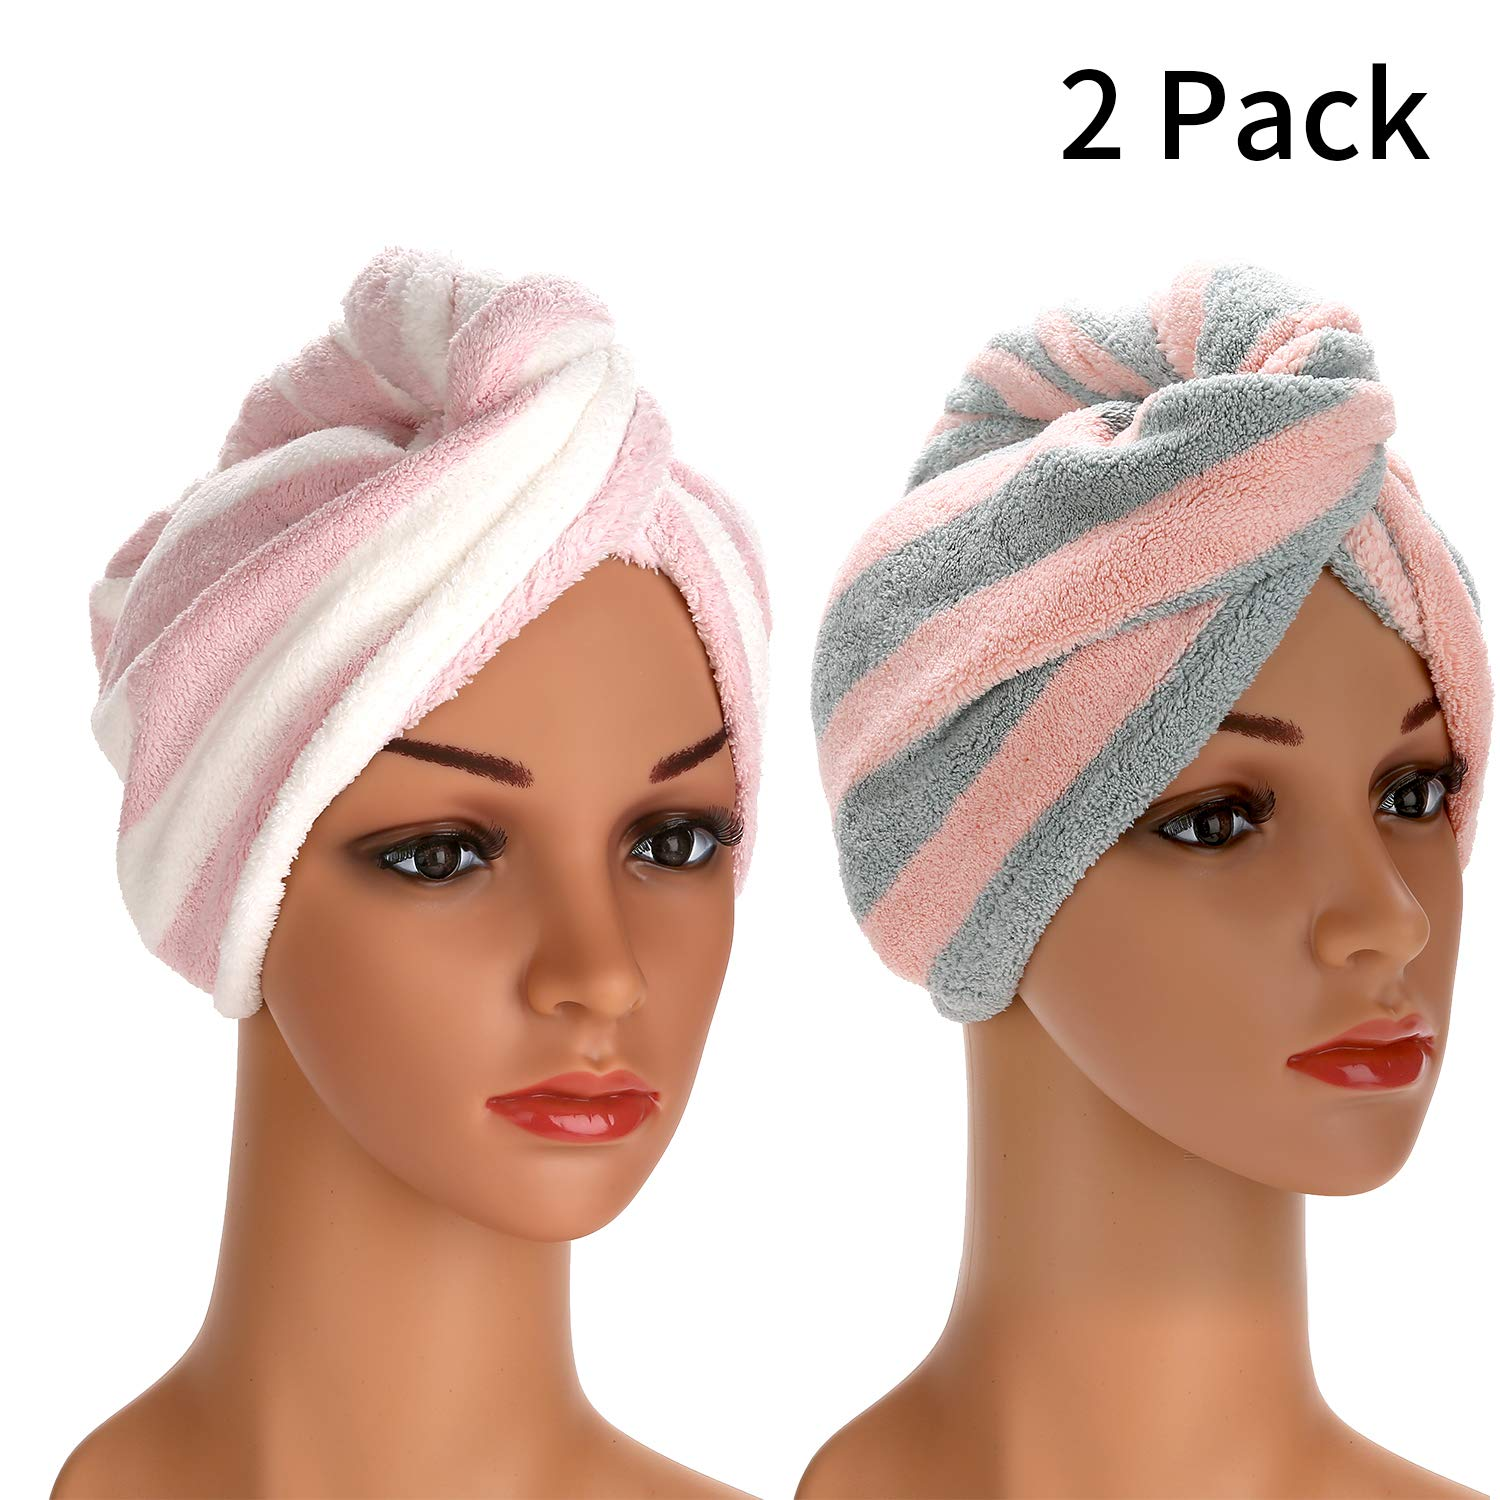 4 Pack Microfiber Hair Drying Towels, Fast Drying Hair Cap, Long Hair Wrap,Absorbent Twist Turban(Pink, yellow, blue, purple) Si Tong